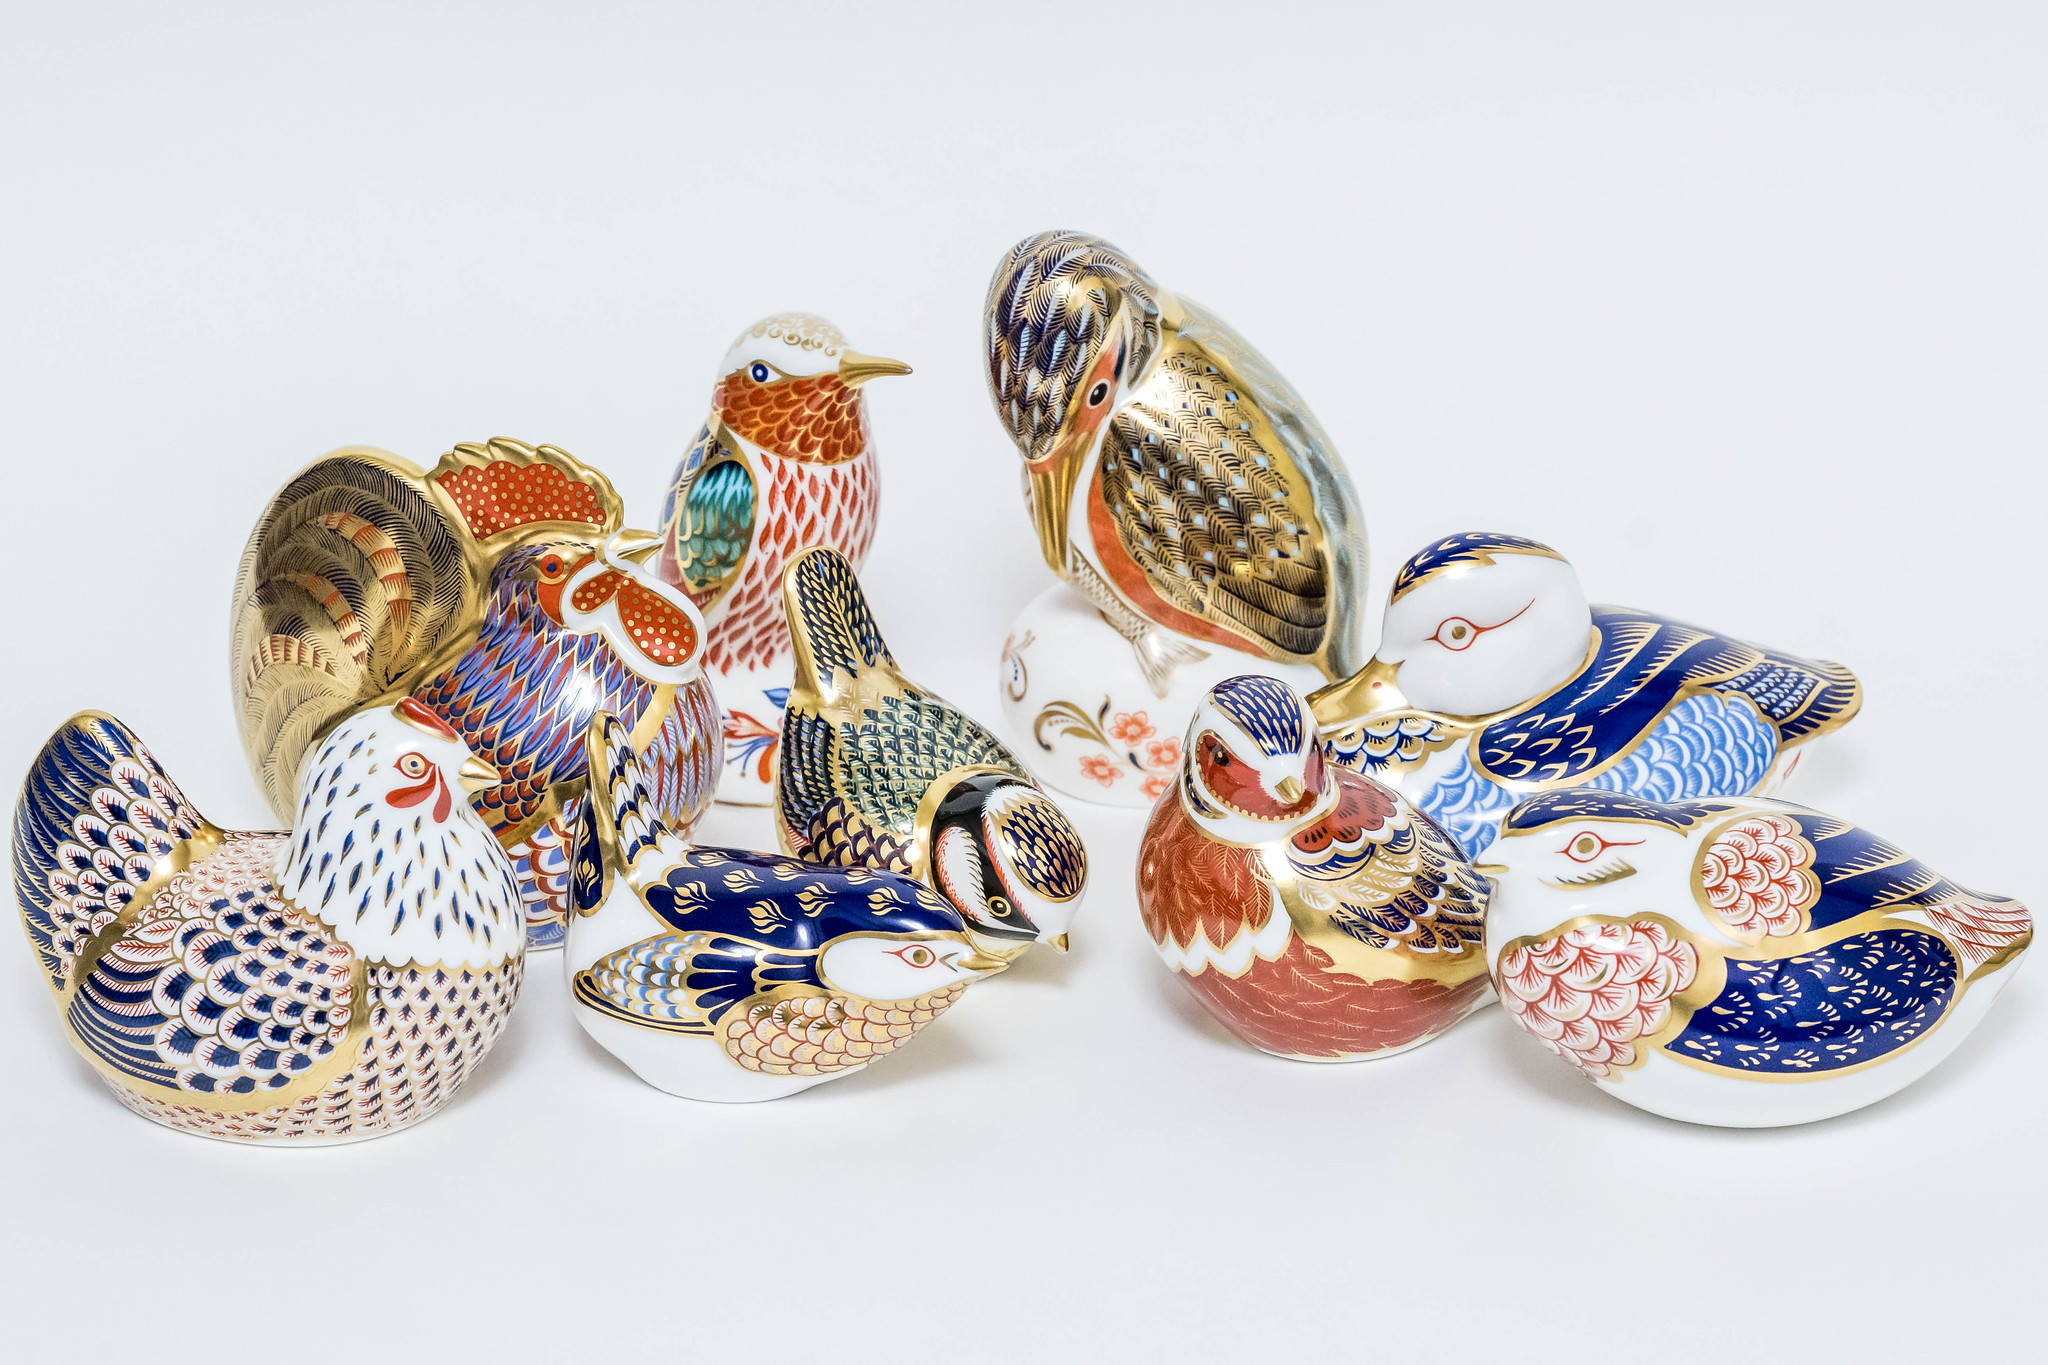 Paperweight / Royal Crown Derby